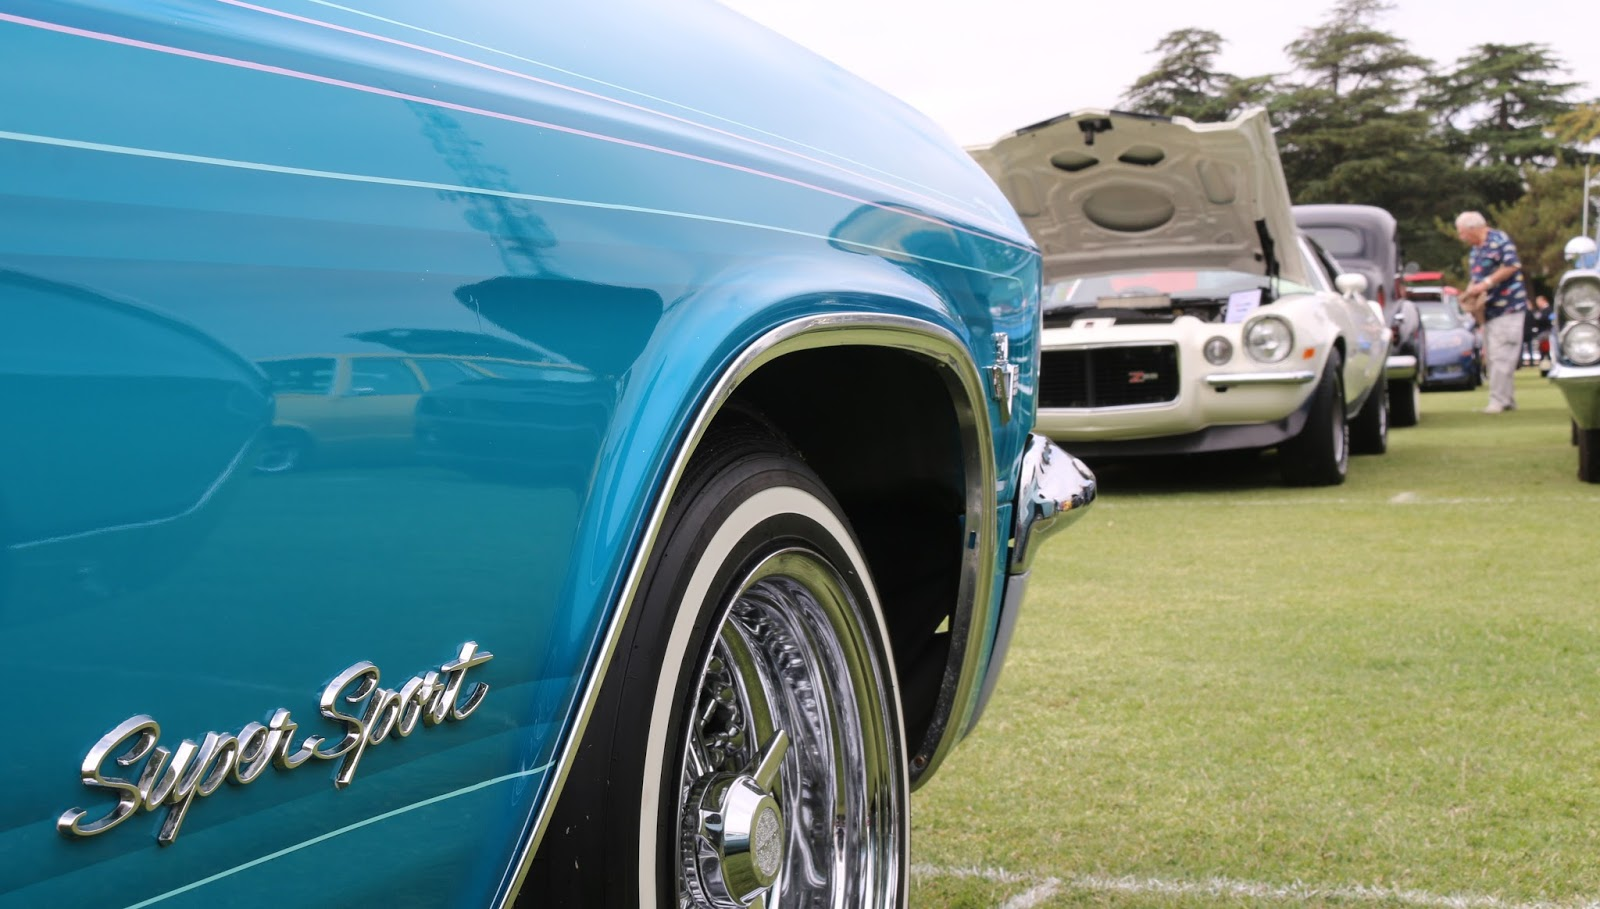 Covering Classic Cars Th Annual Classic Chevys Of SoCal Car Show - Socal car shows